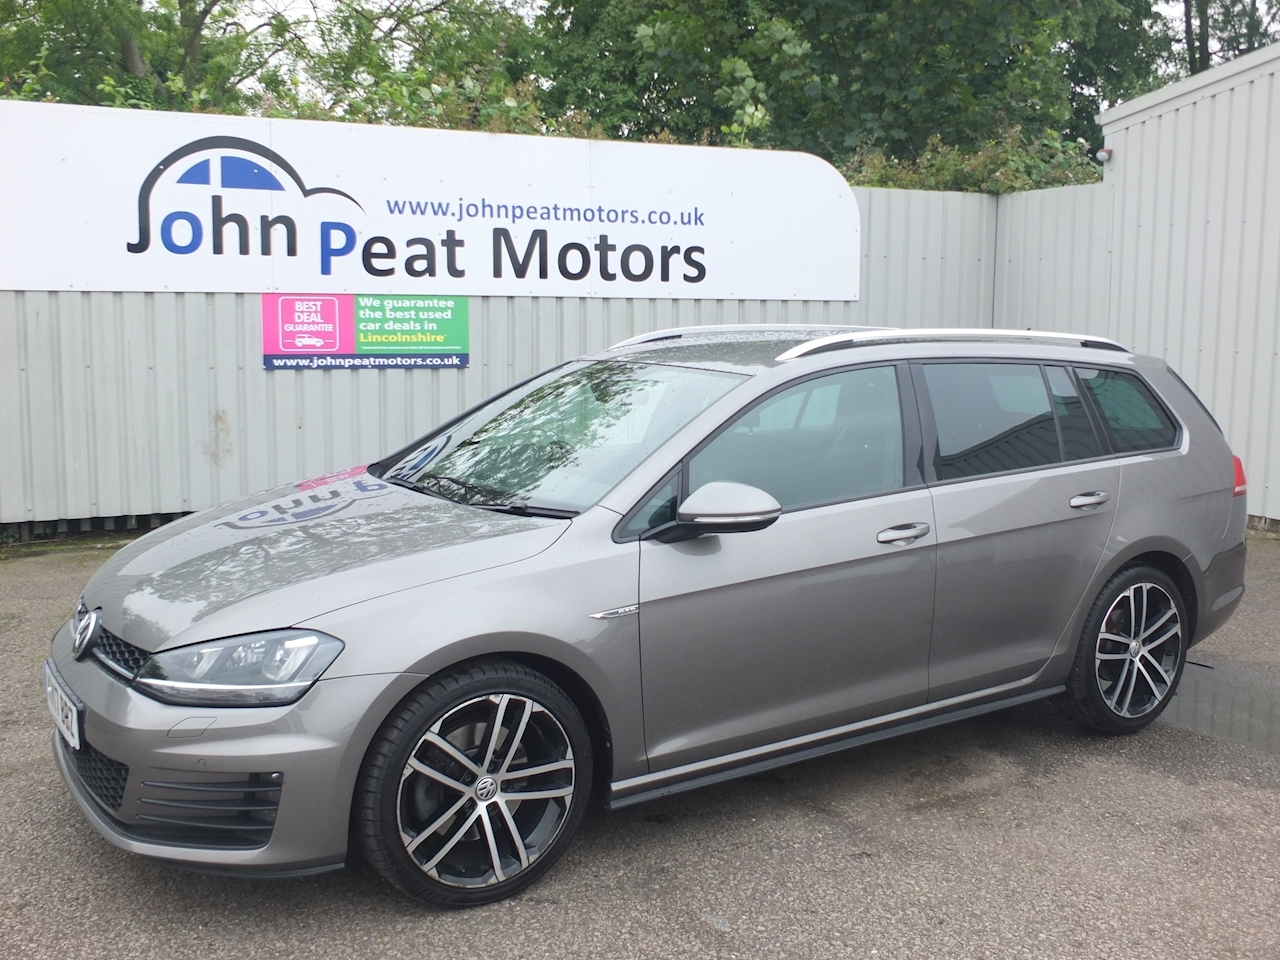 Golf Gtd Tdi Estate 2.0 Manual Diesel